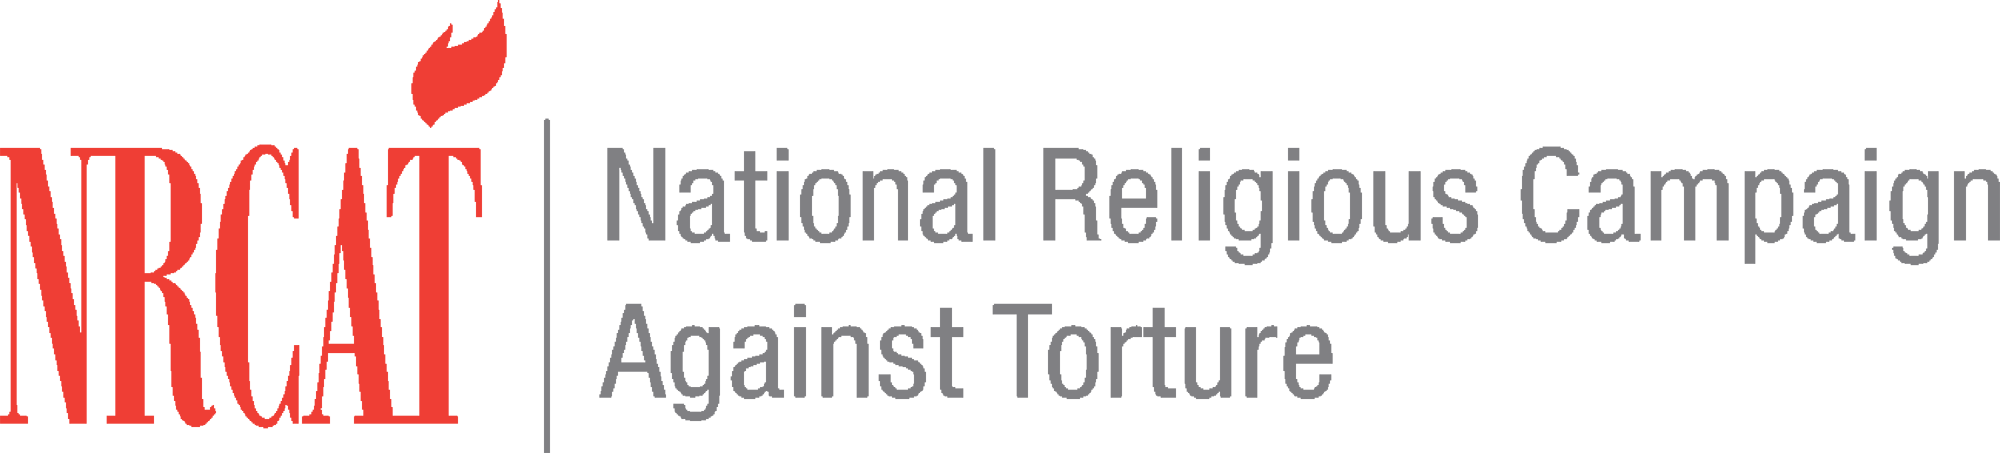 National Religious Campaign Against Torture